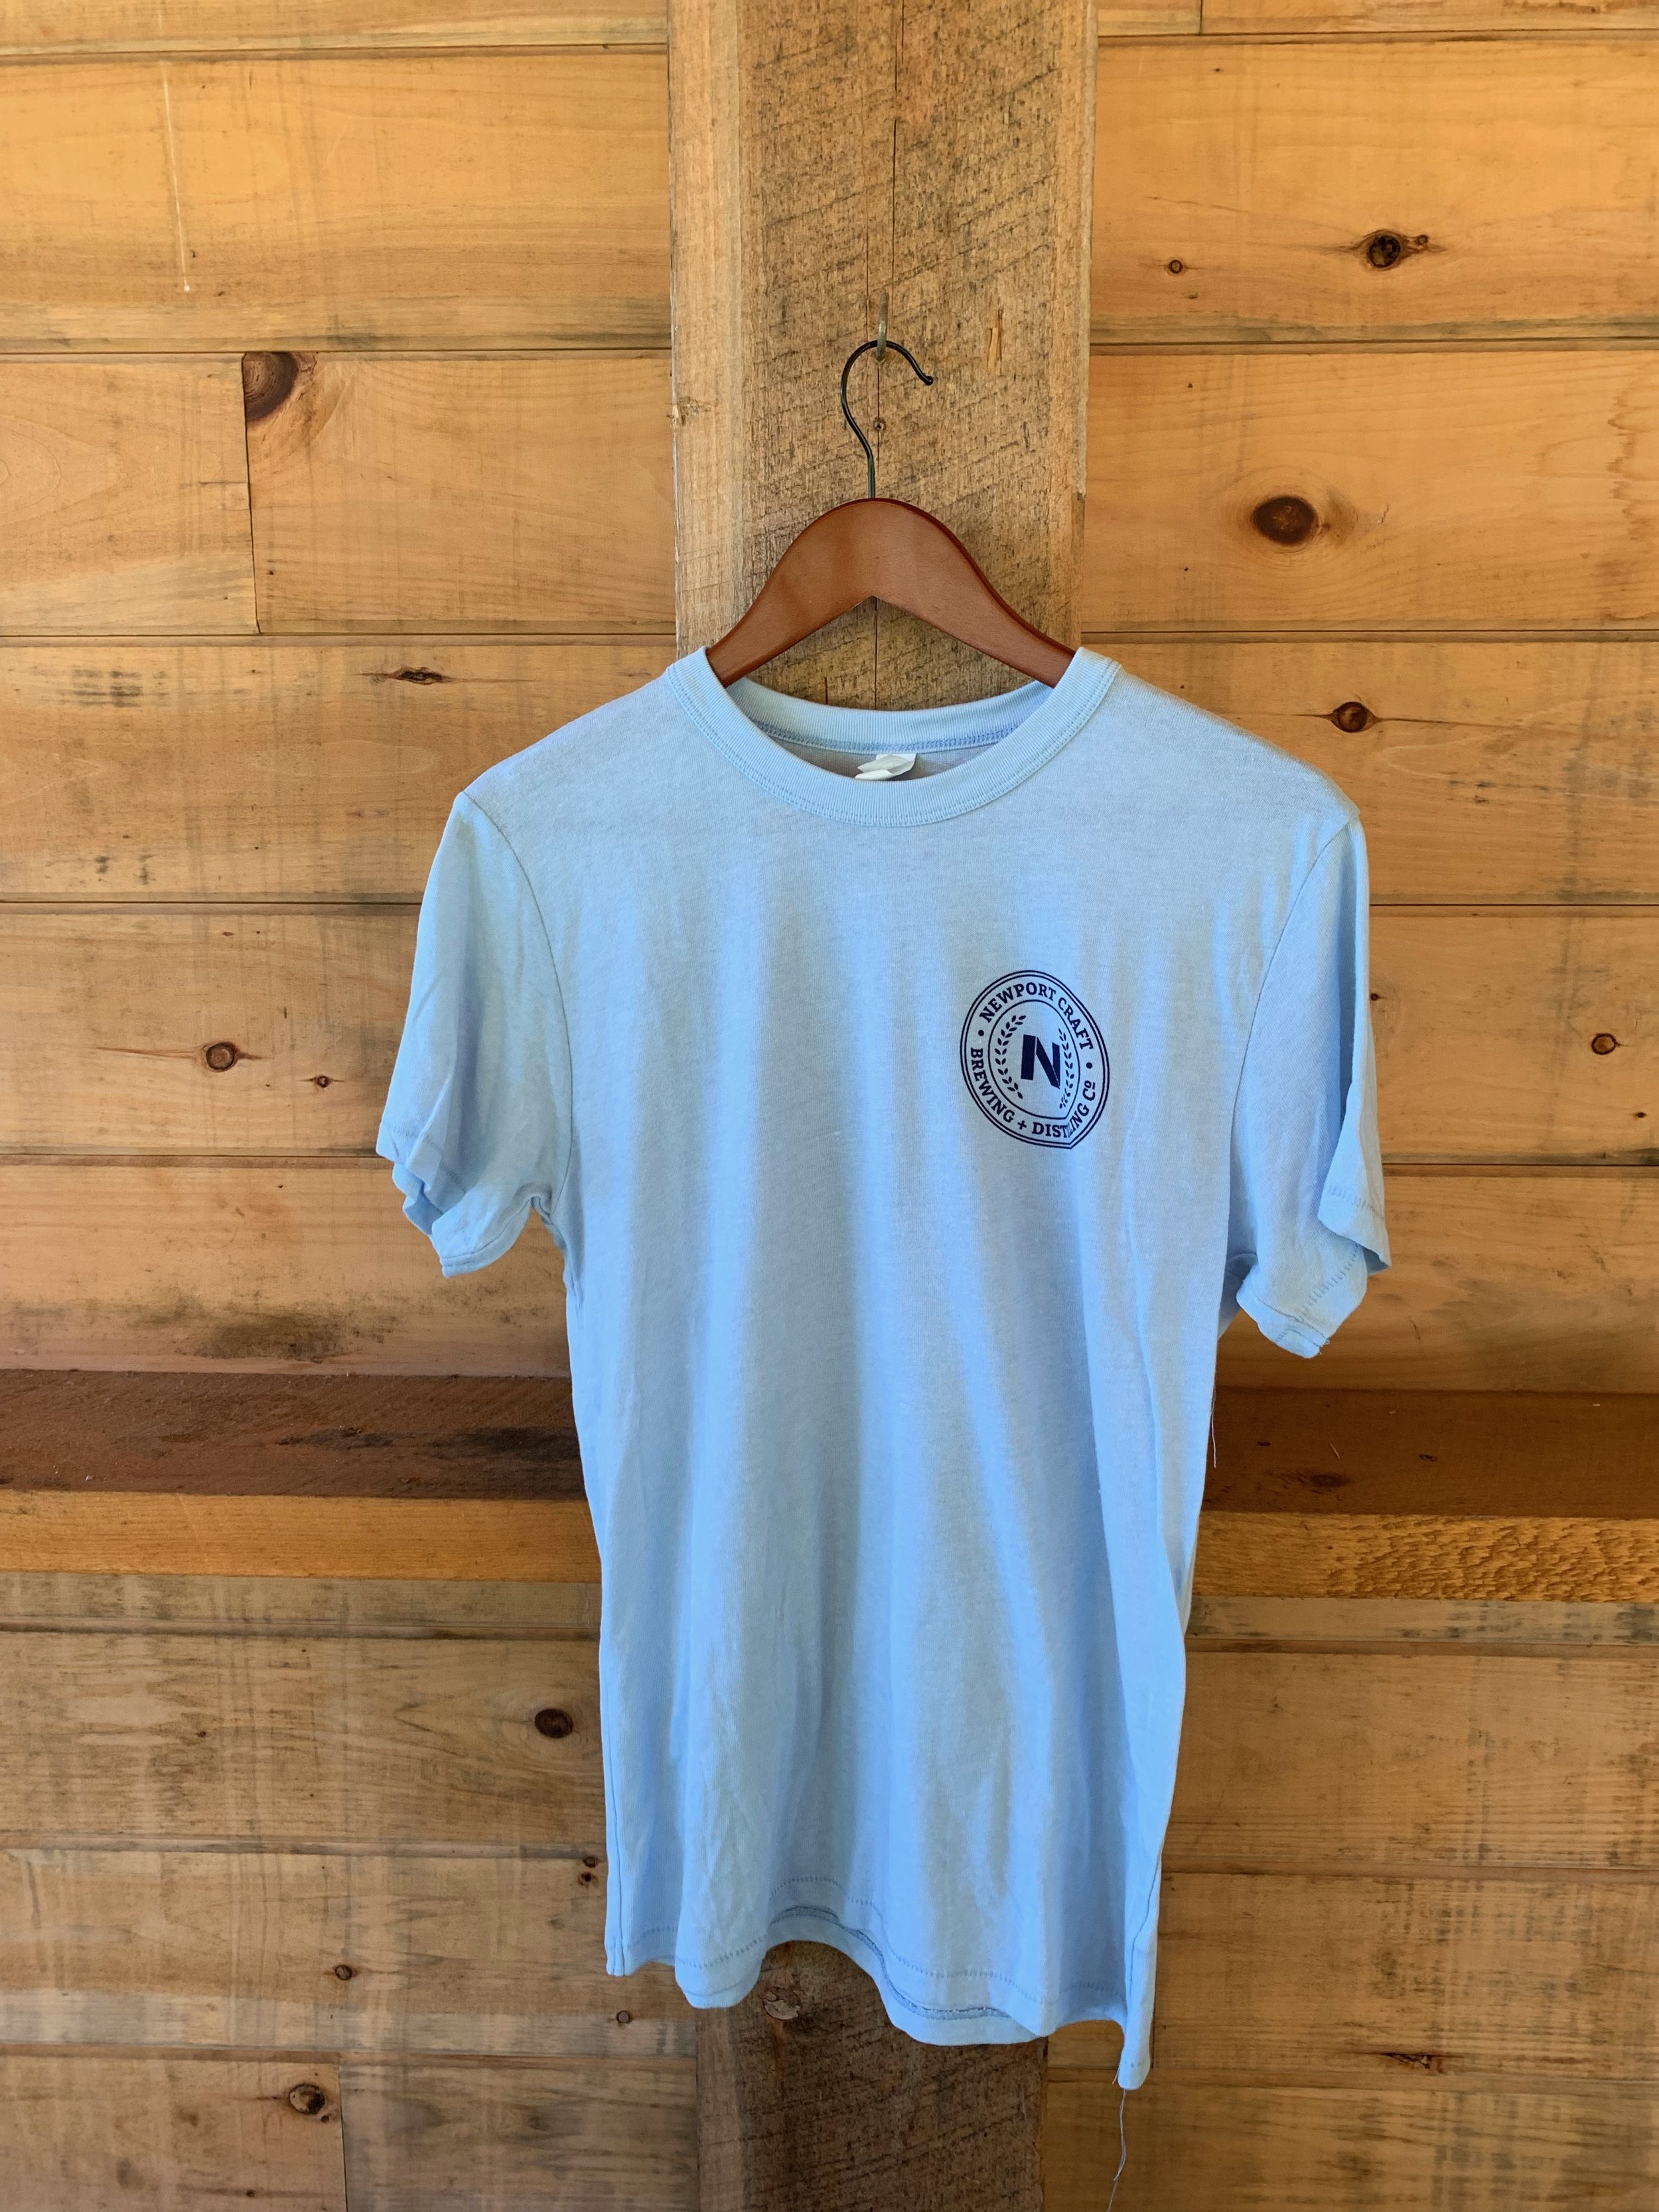 Light blue t-shirt $20 - Available in XS-XXL.